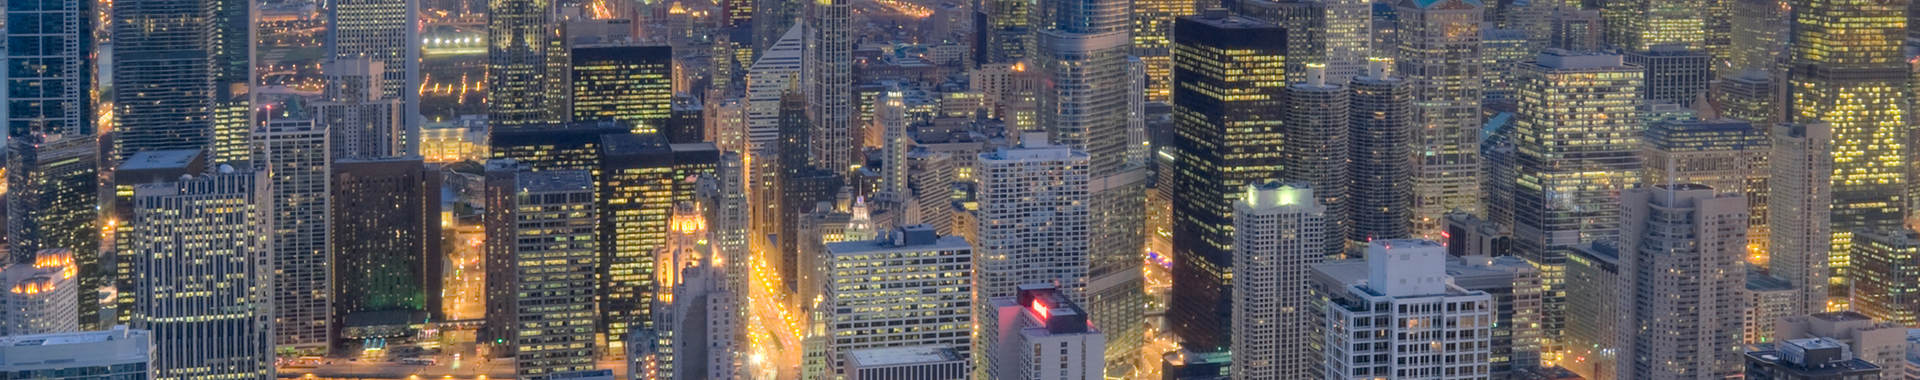 Aerial photo of downtown Chicago